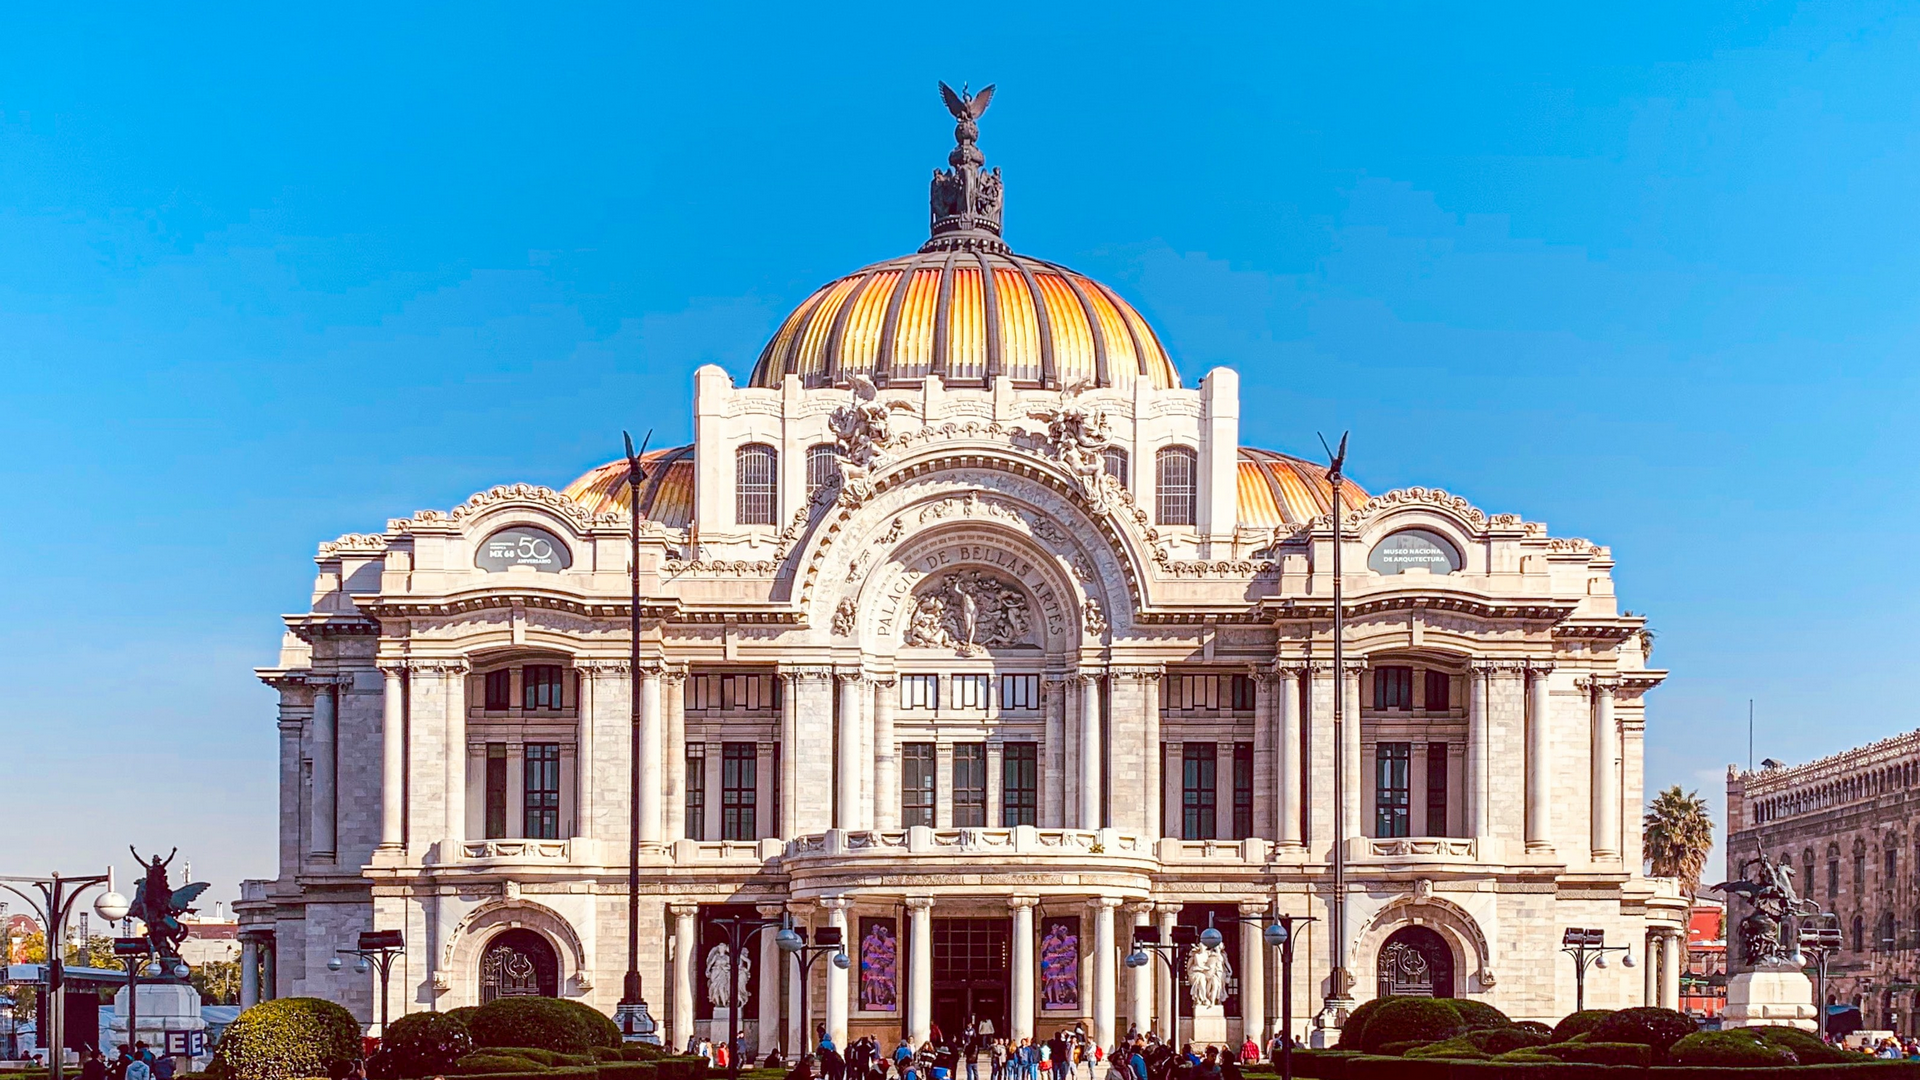 A view in Mexico